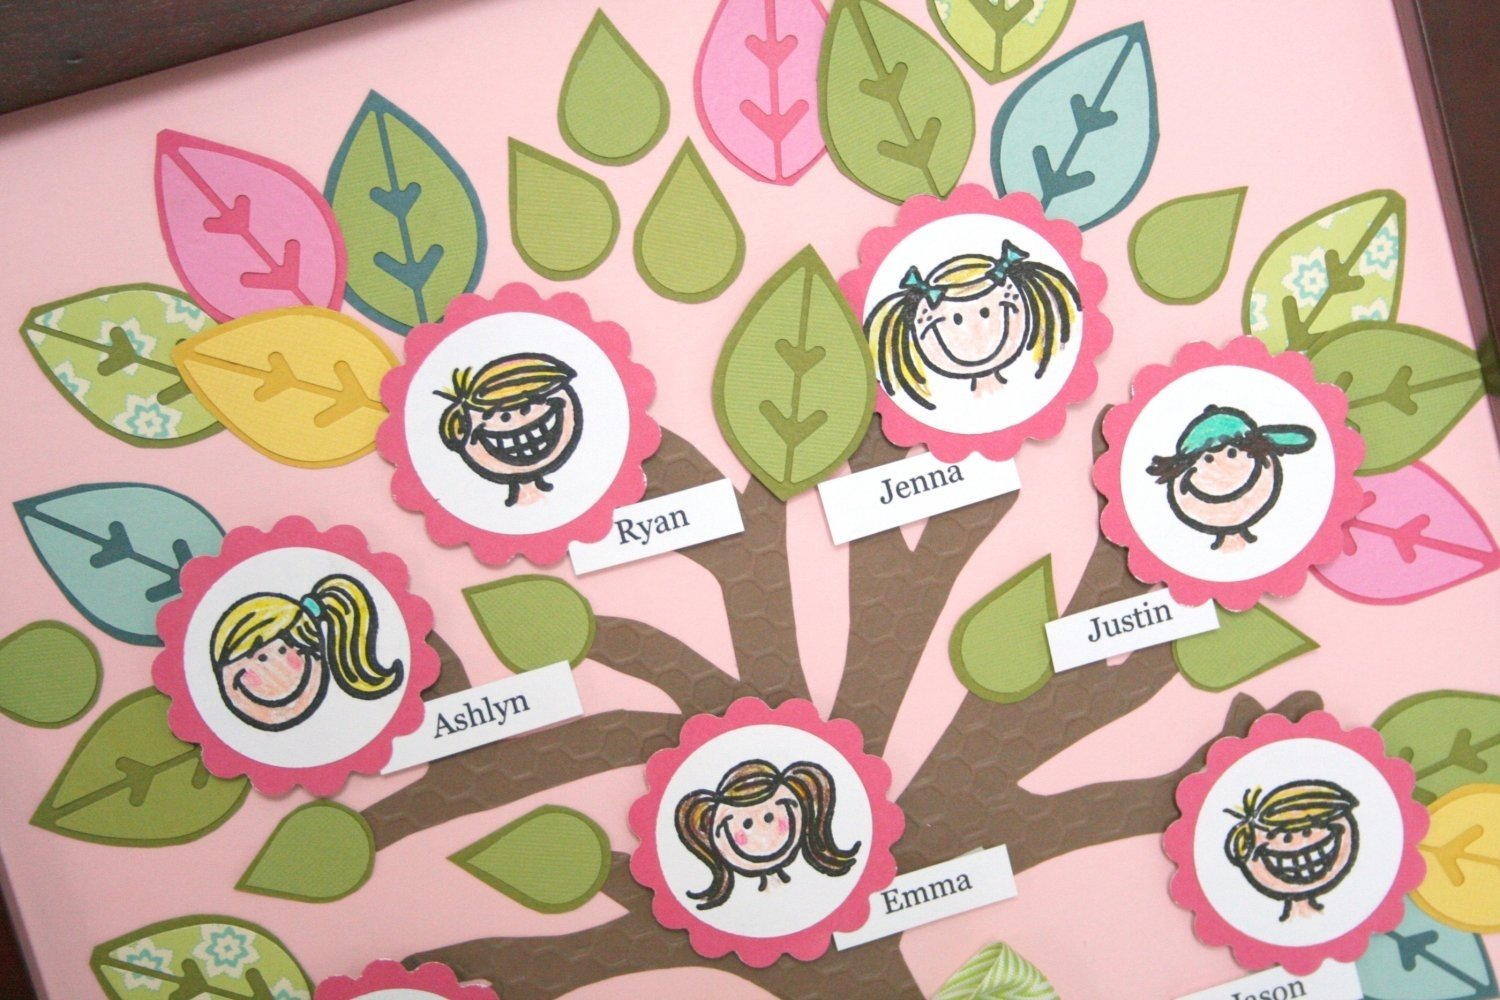 10 Stunning Family Tree Ideas For Kids whatchu talkin bout willis fiskars crafting with kids family